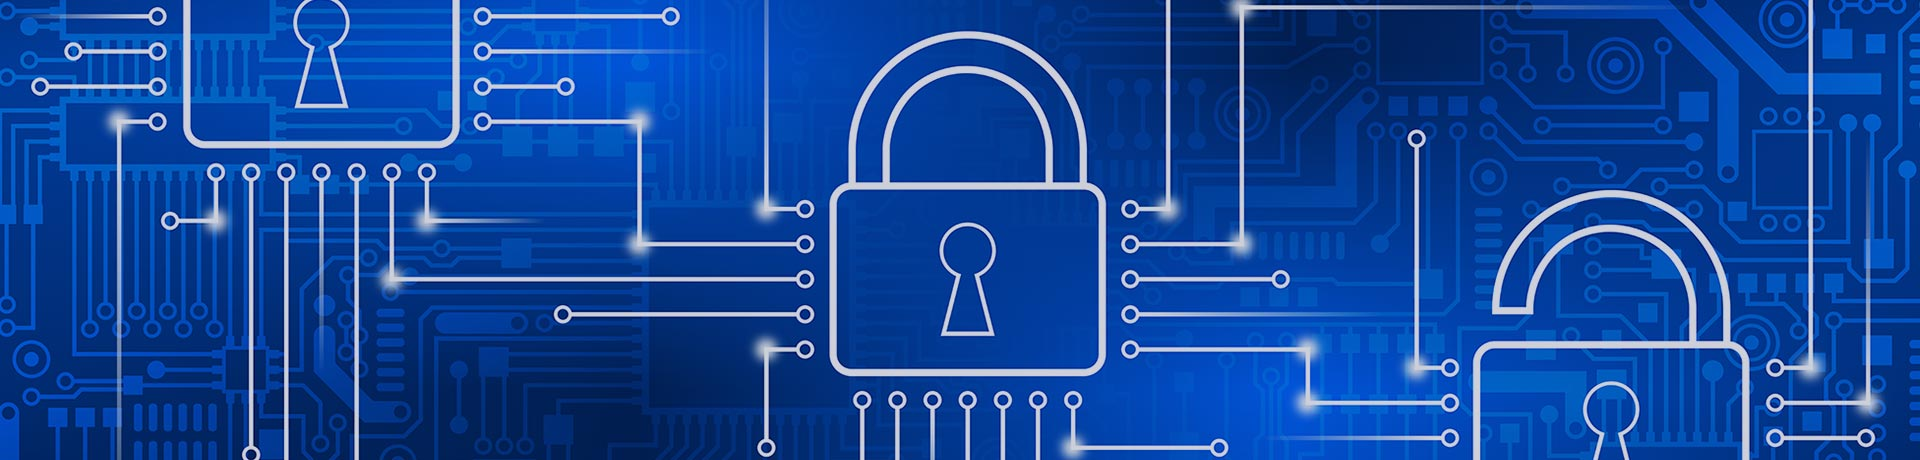 A blue background with white padlock pictograms